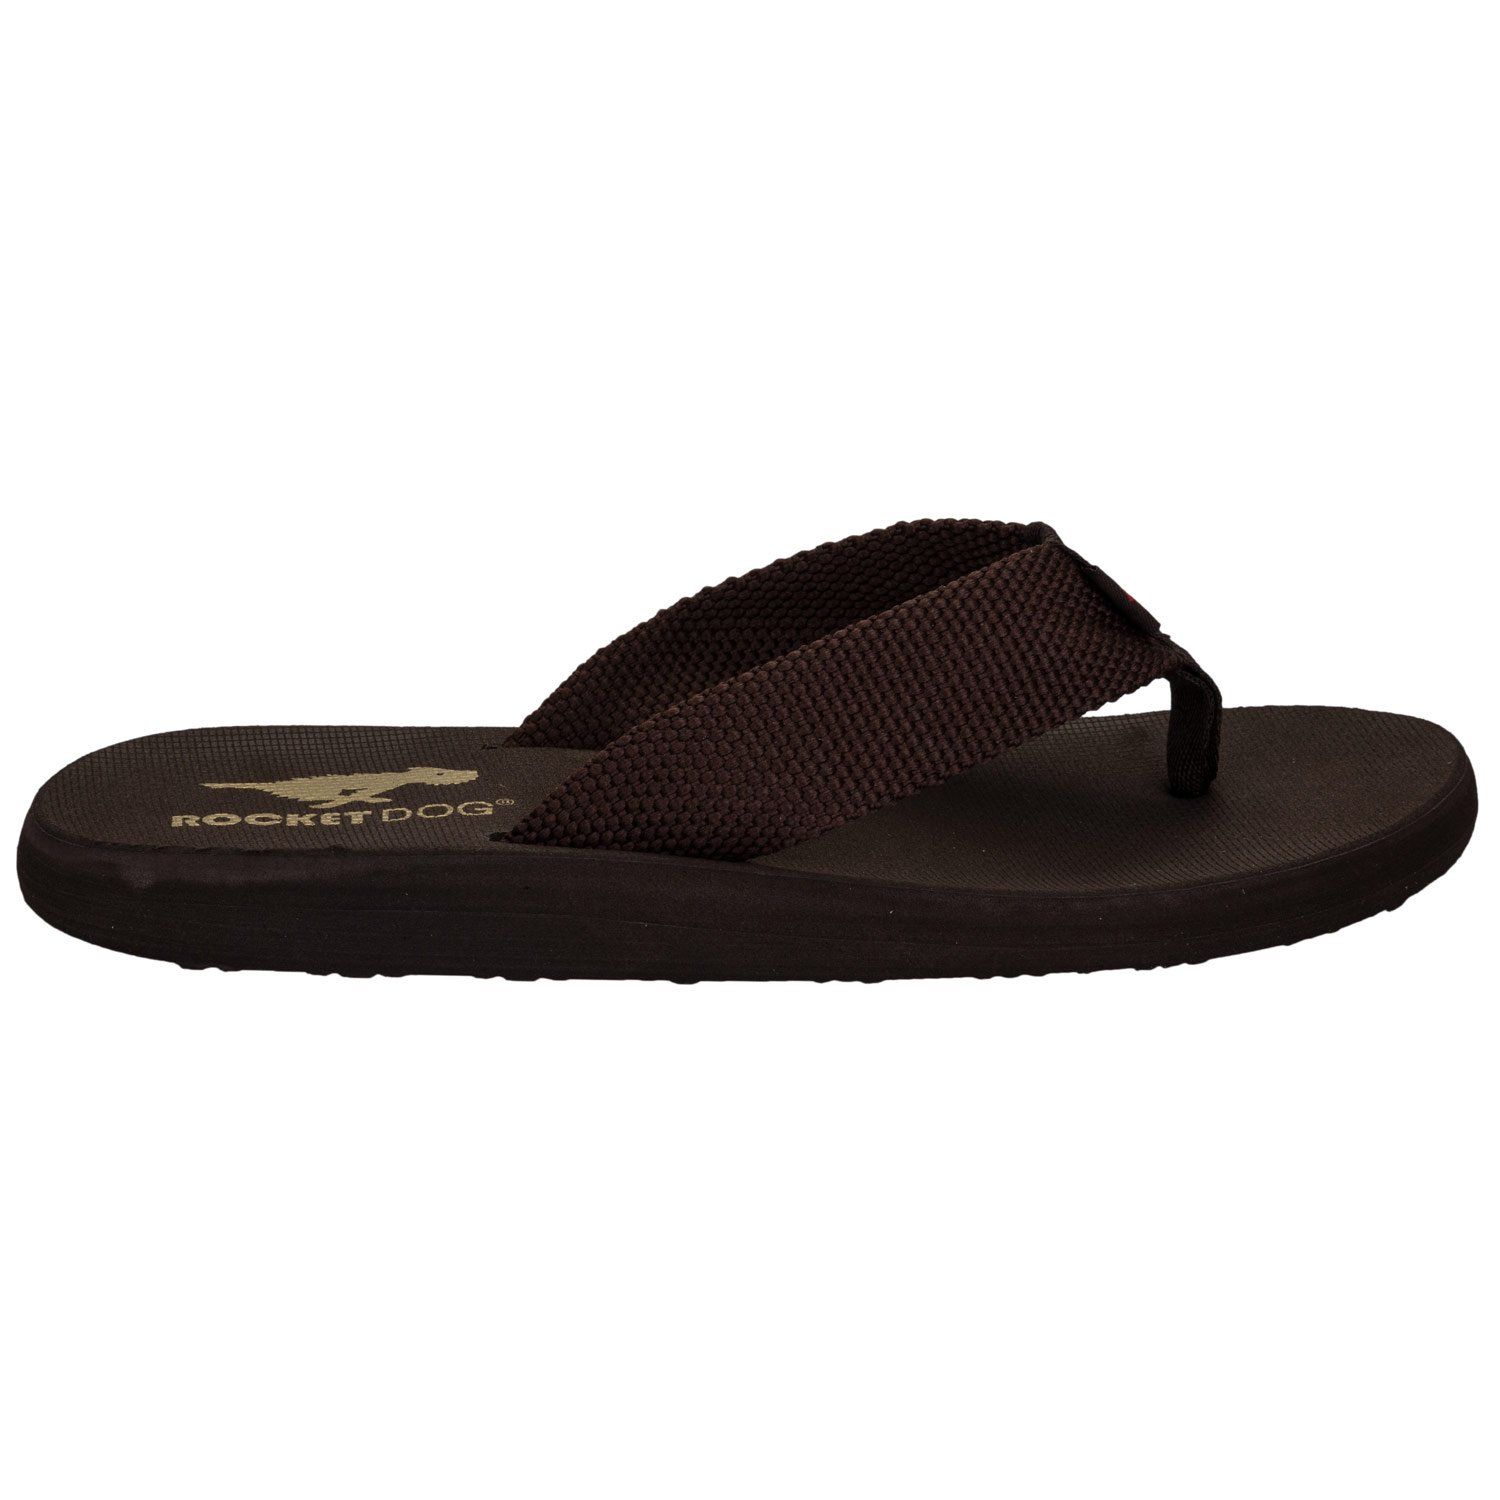 6a06a30198210 Women s Rocket Dog Nina Webbing Flip Flops In Brown  Amazon.co.uk  Shoes    Bags